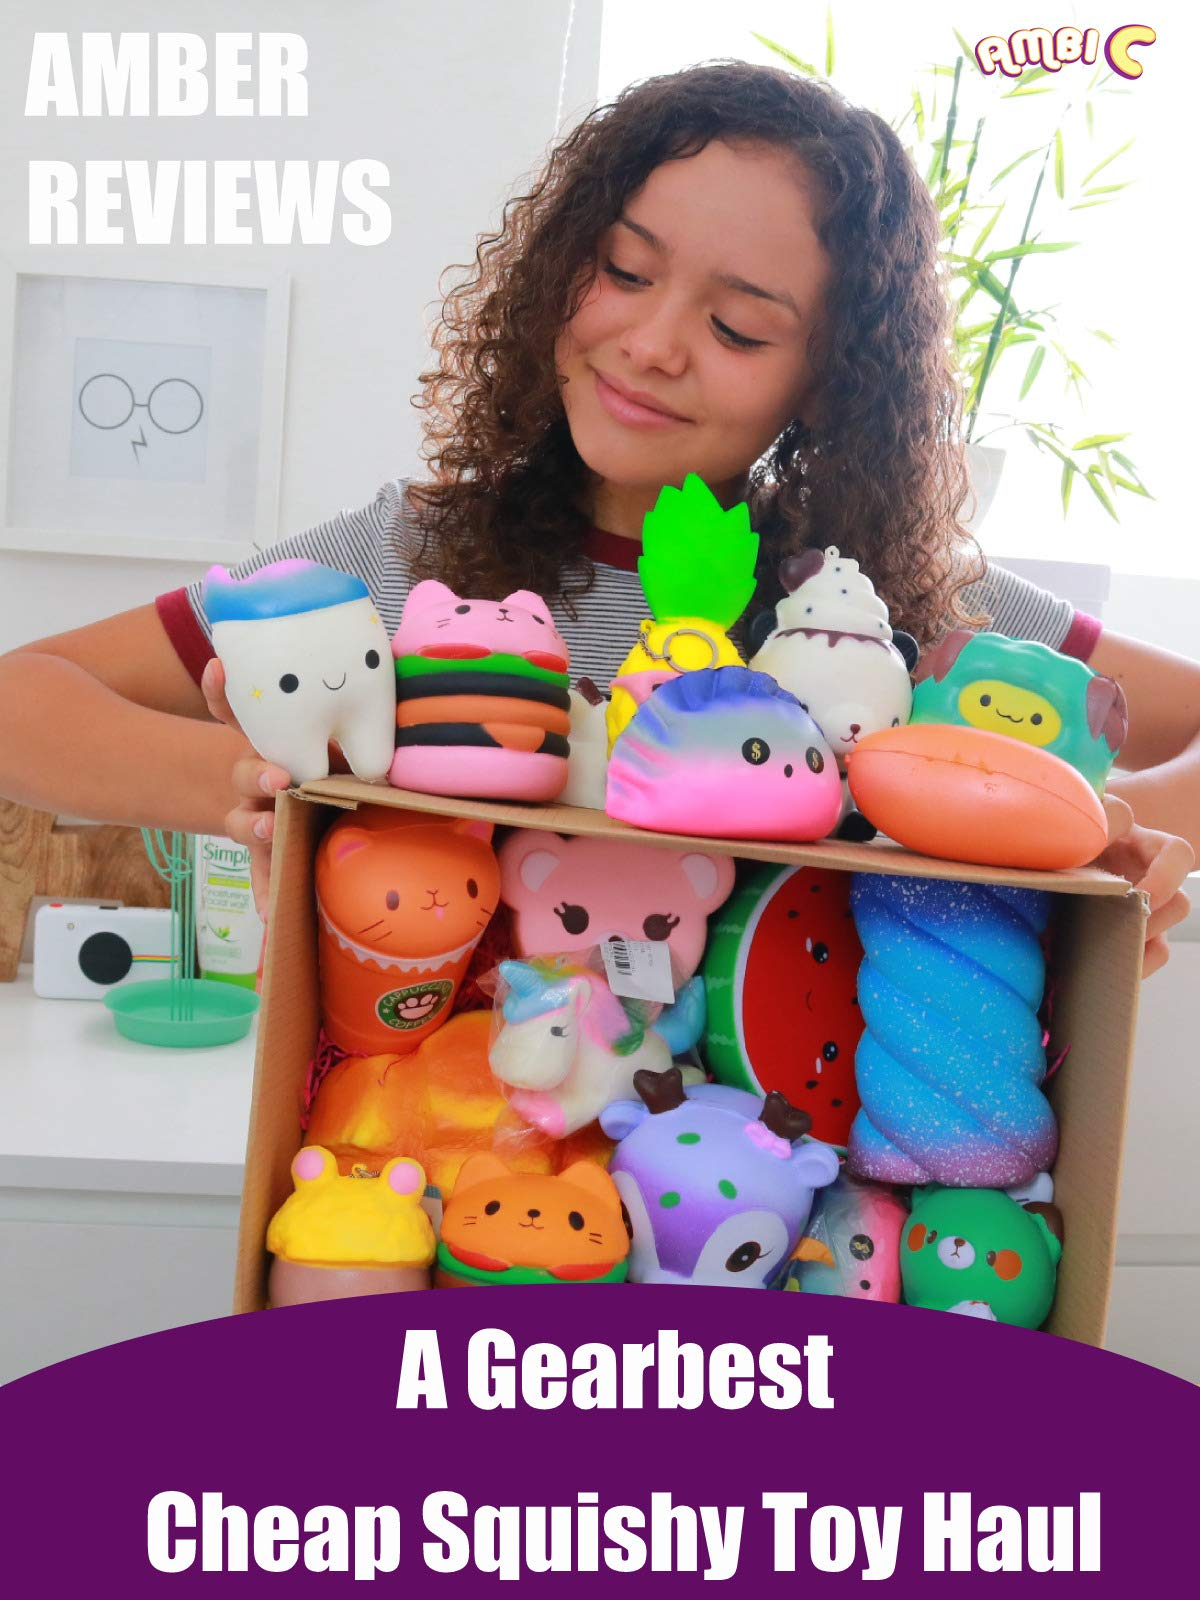 Amber Reviews a Gearbest Cheap Squishy Toy Haul